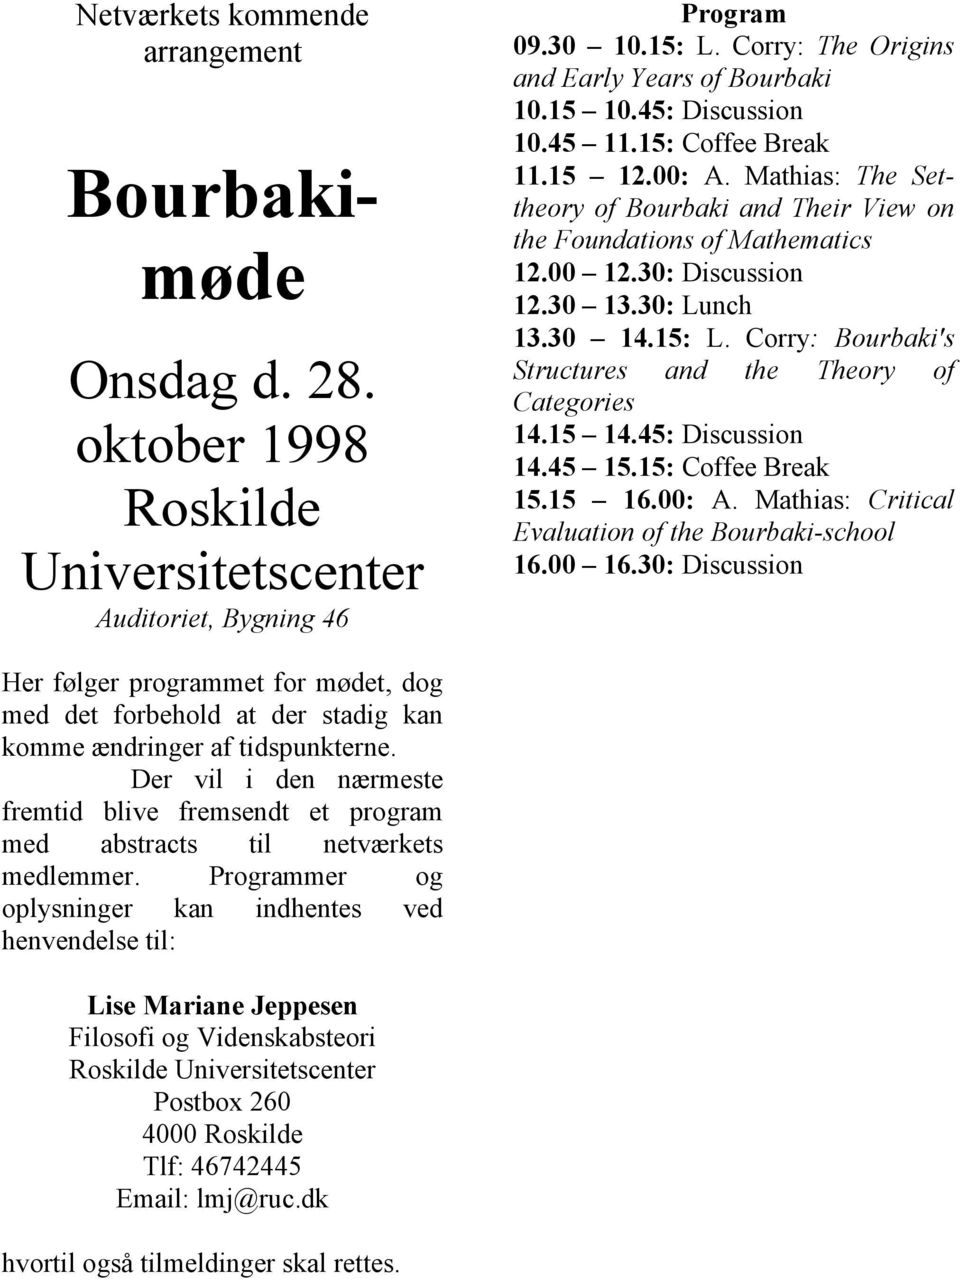 15: L. Corry: Bourbaki's Structures and the Theory of Categories 14.15 14.45: Discussion 14.45 15.15: Coffee Break 15.15 16.00: A. Mathias: Critical Evaluation of the Bourbaki-school 16.00 16.